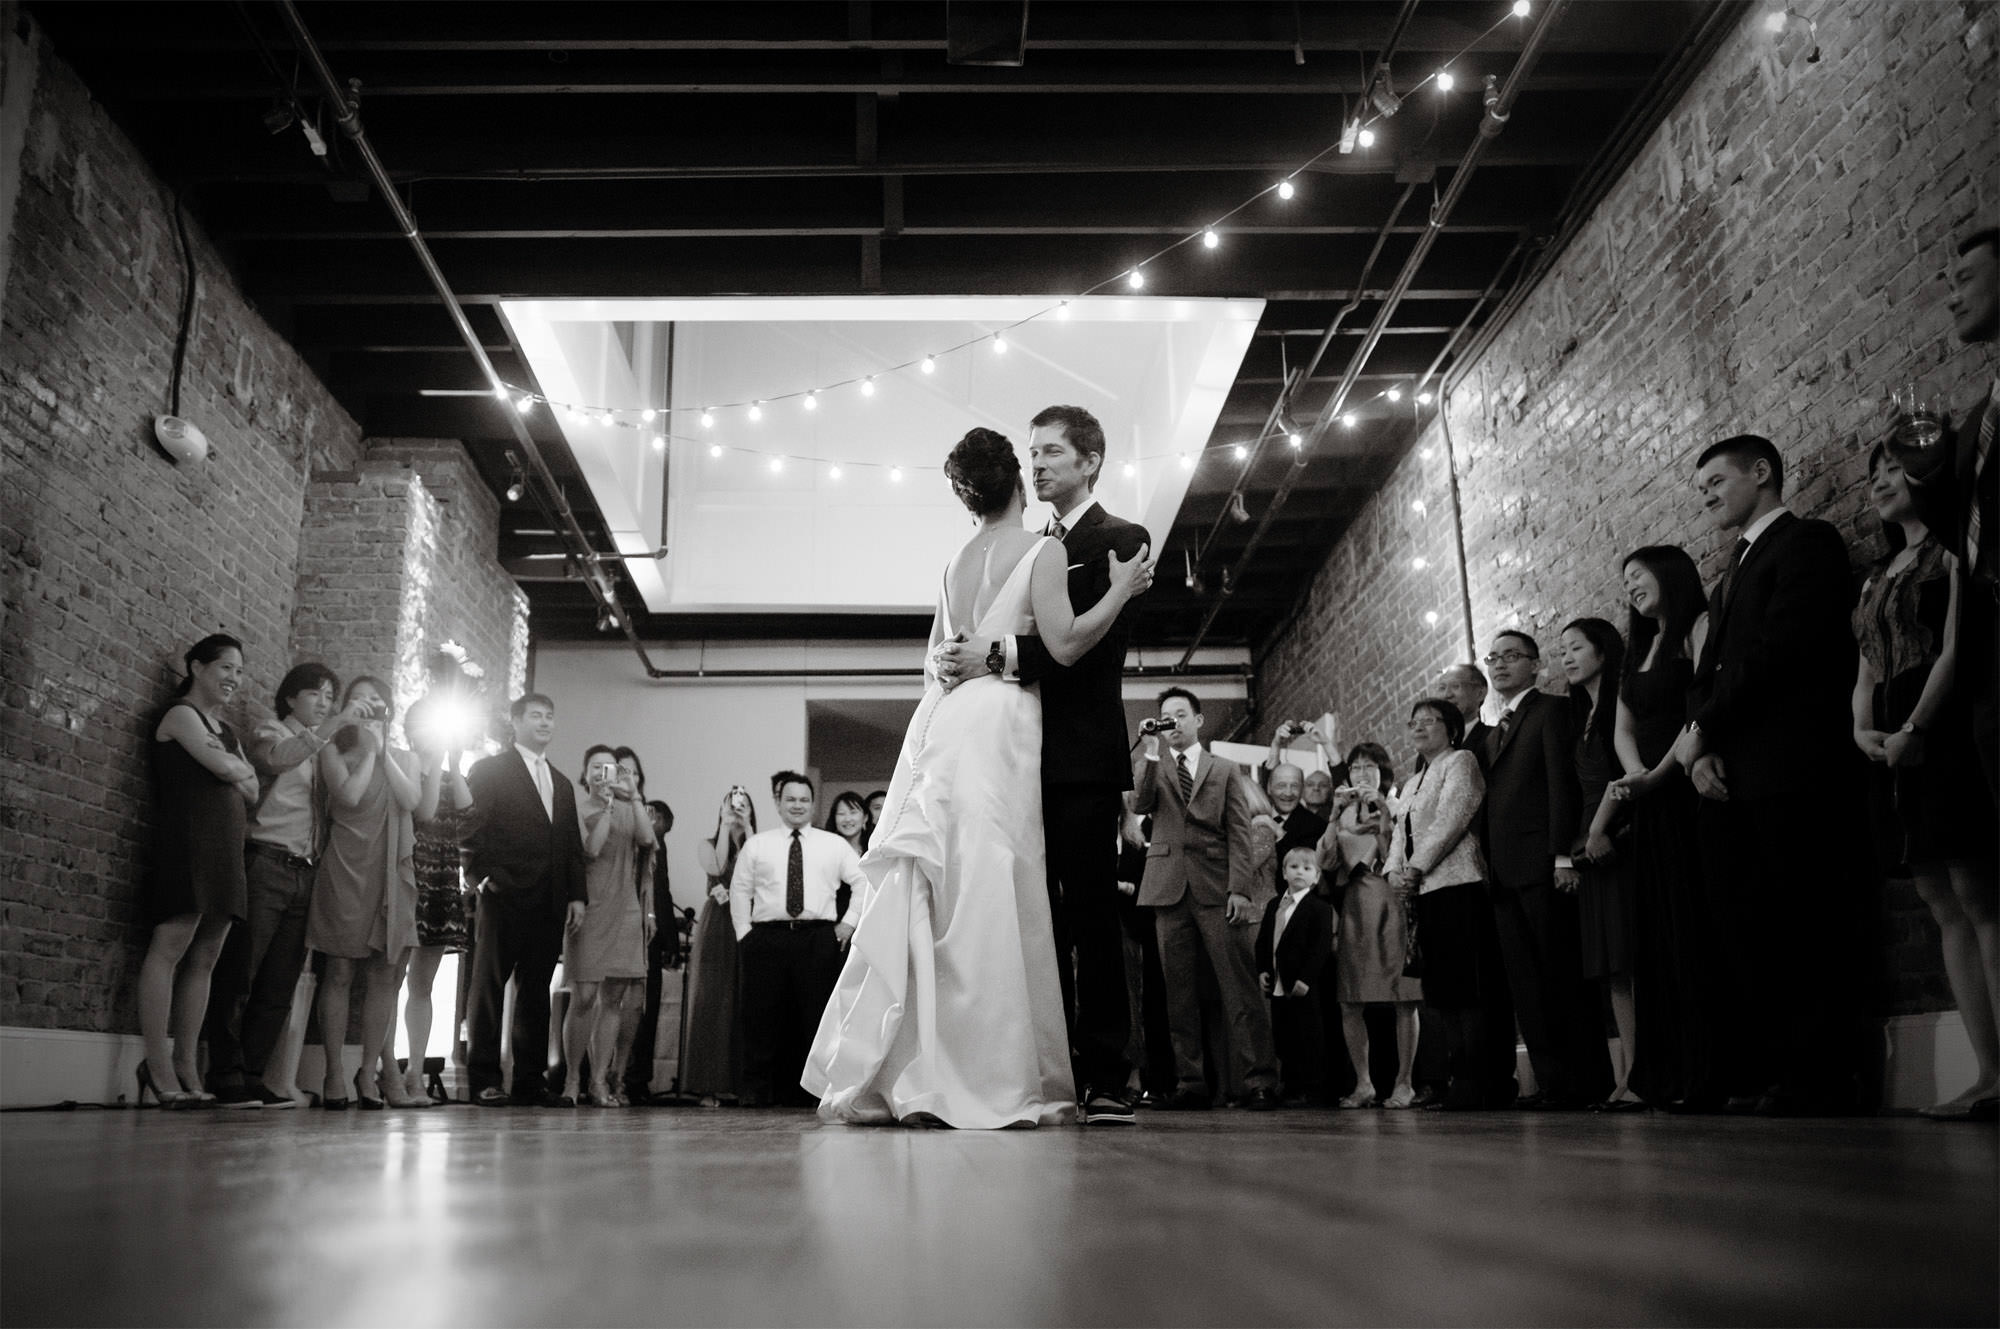 The bride and groom share their first dance during their Epic Yoga Studio wedding in DC.